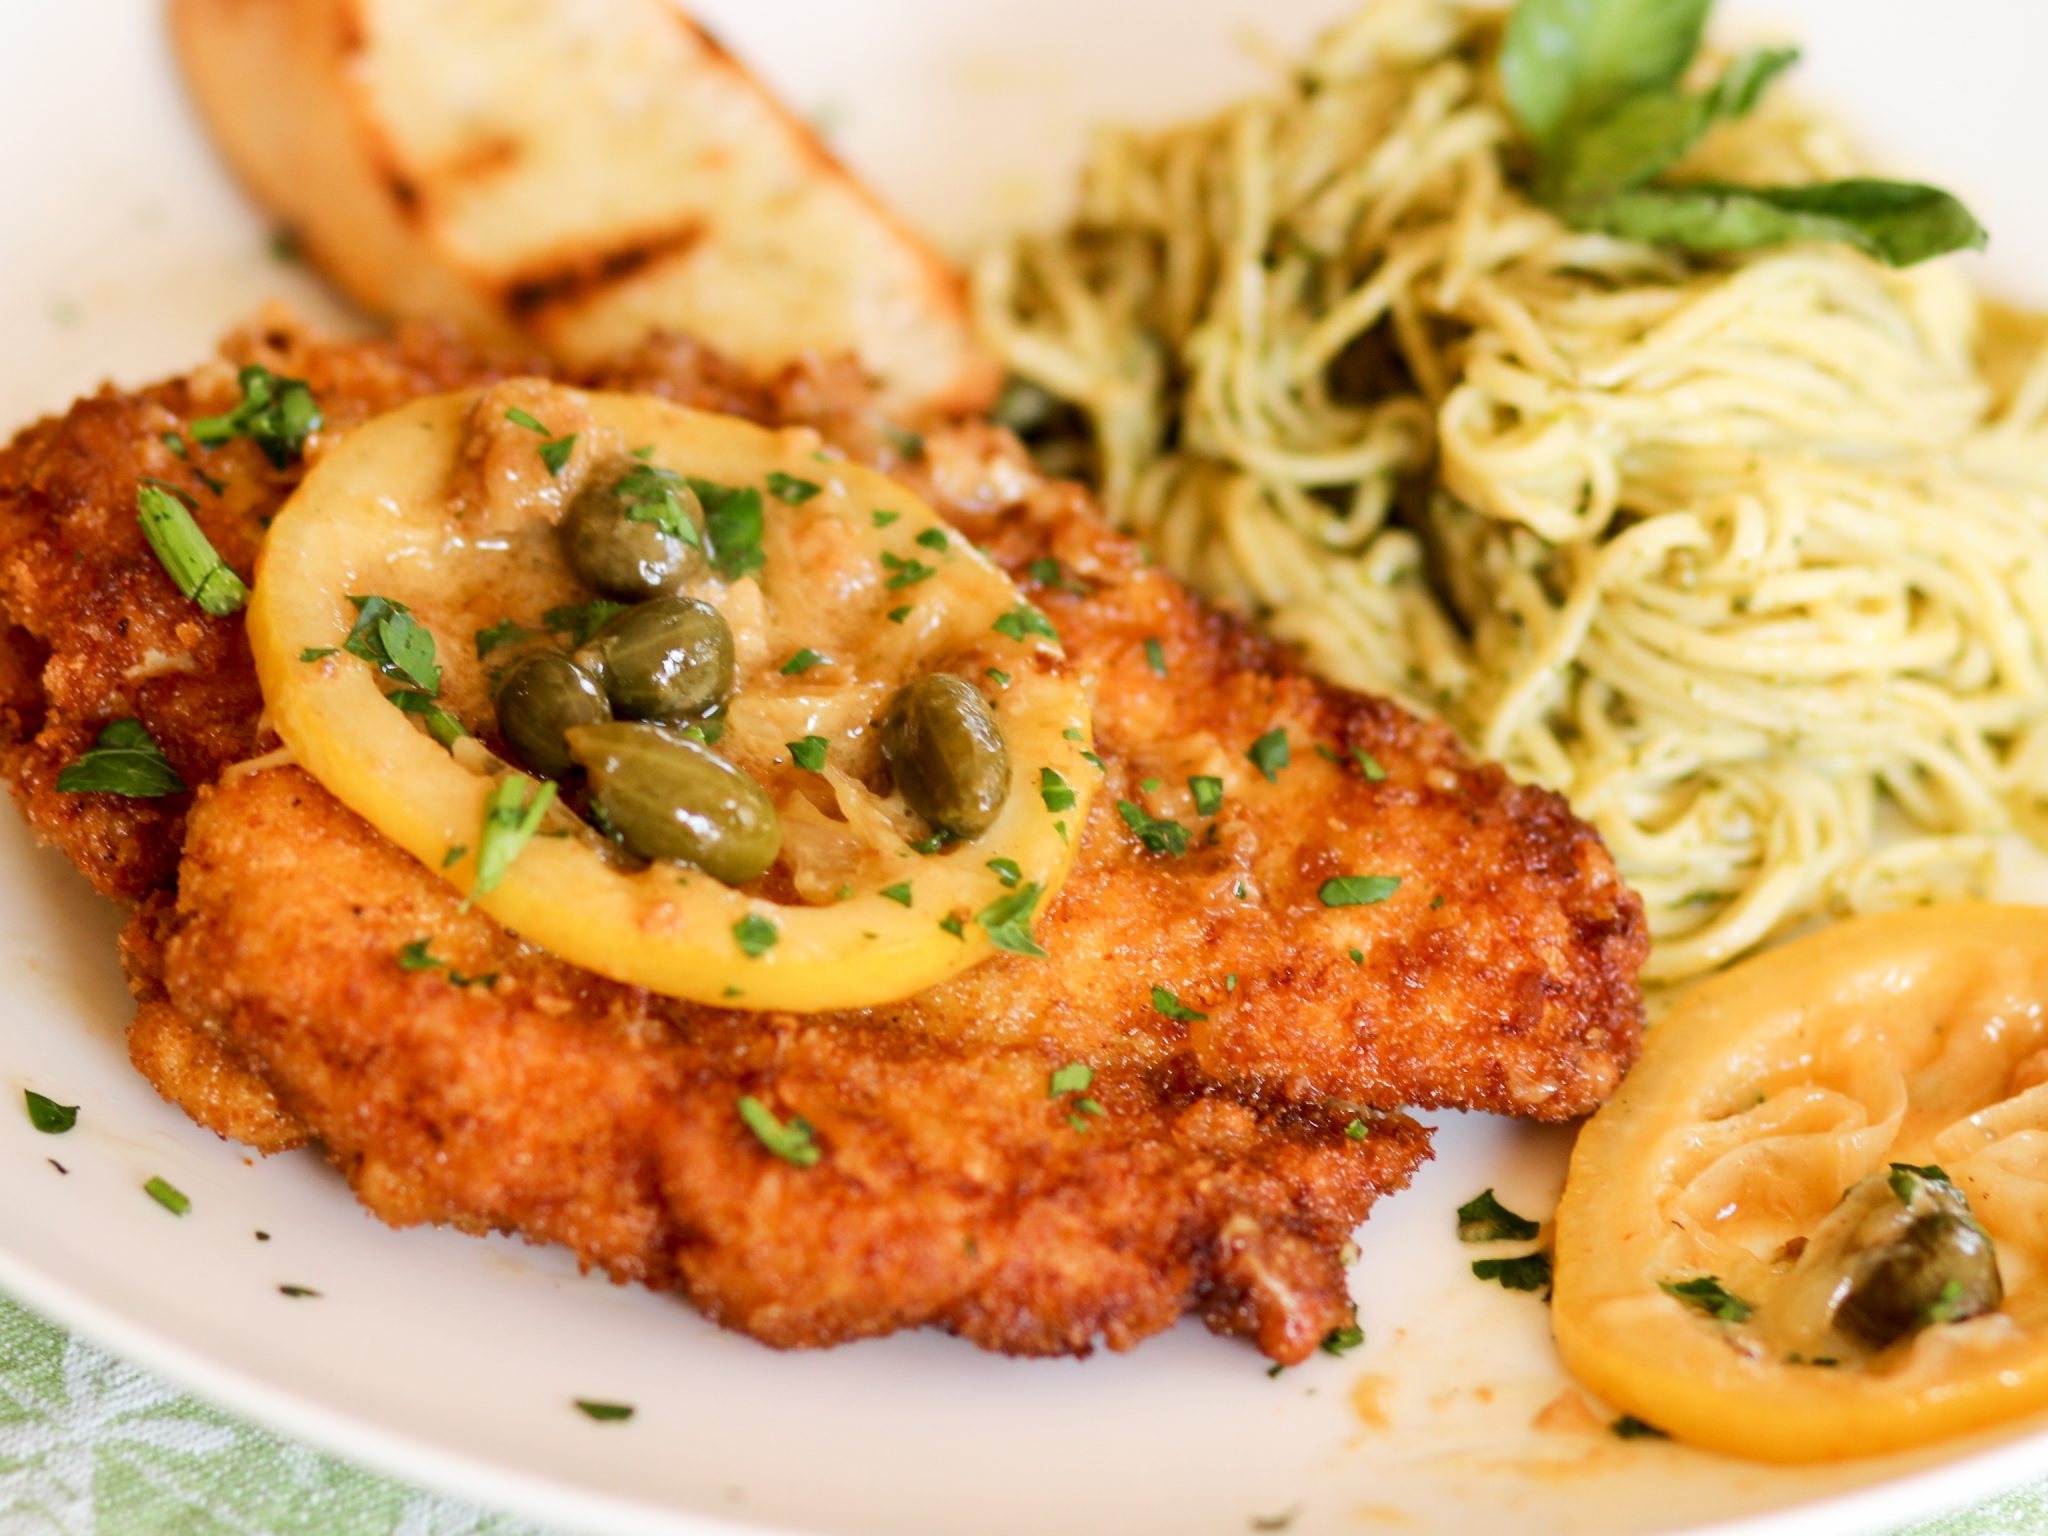 Dining Ken Piccata What Salad To Serve Ken Piccata Lemon What Vegetable To Serve Ken Picatta Ken Breaded Ken Cutlets nice food What To Serve With Chicken Piccata